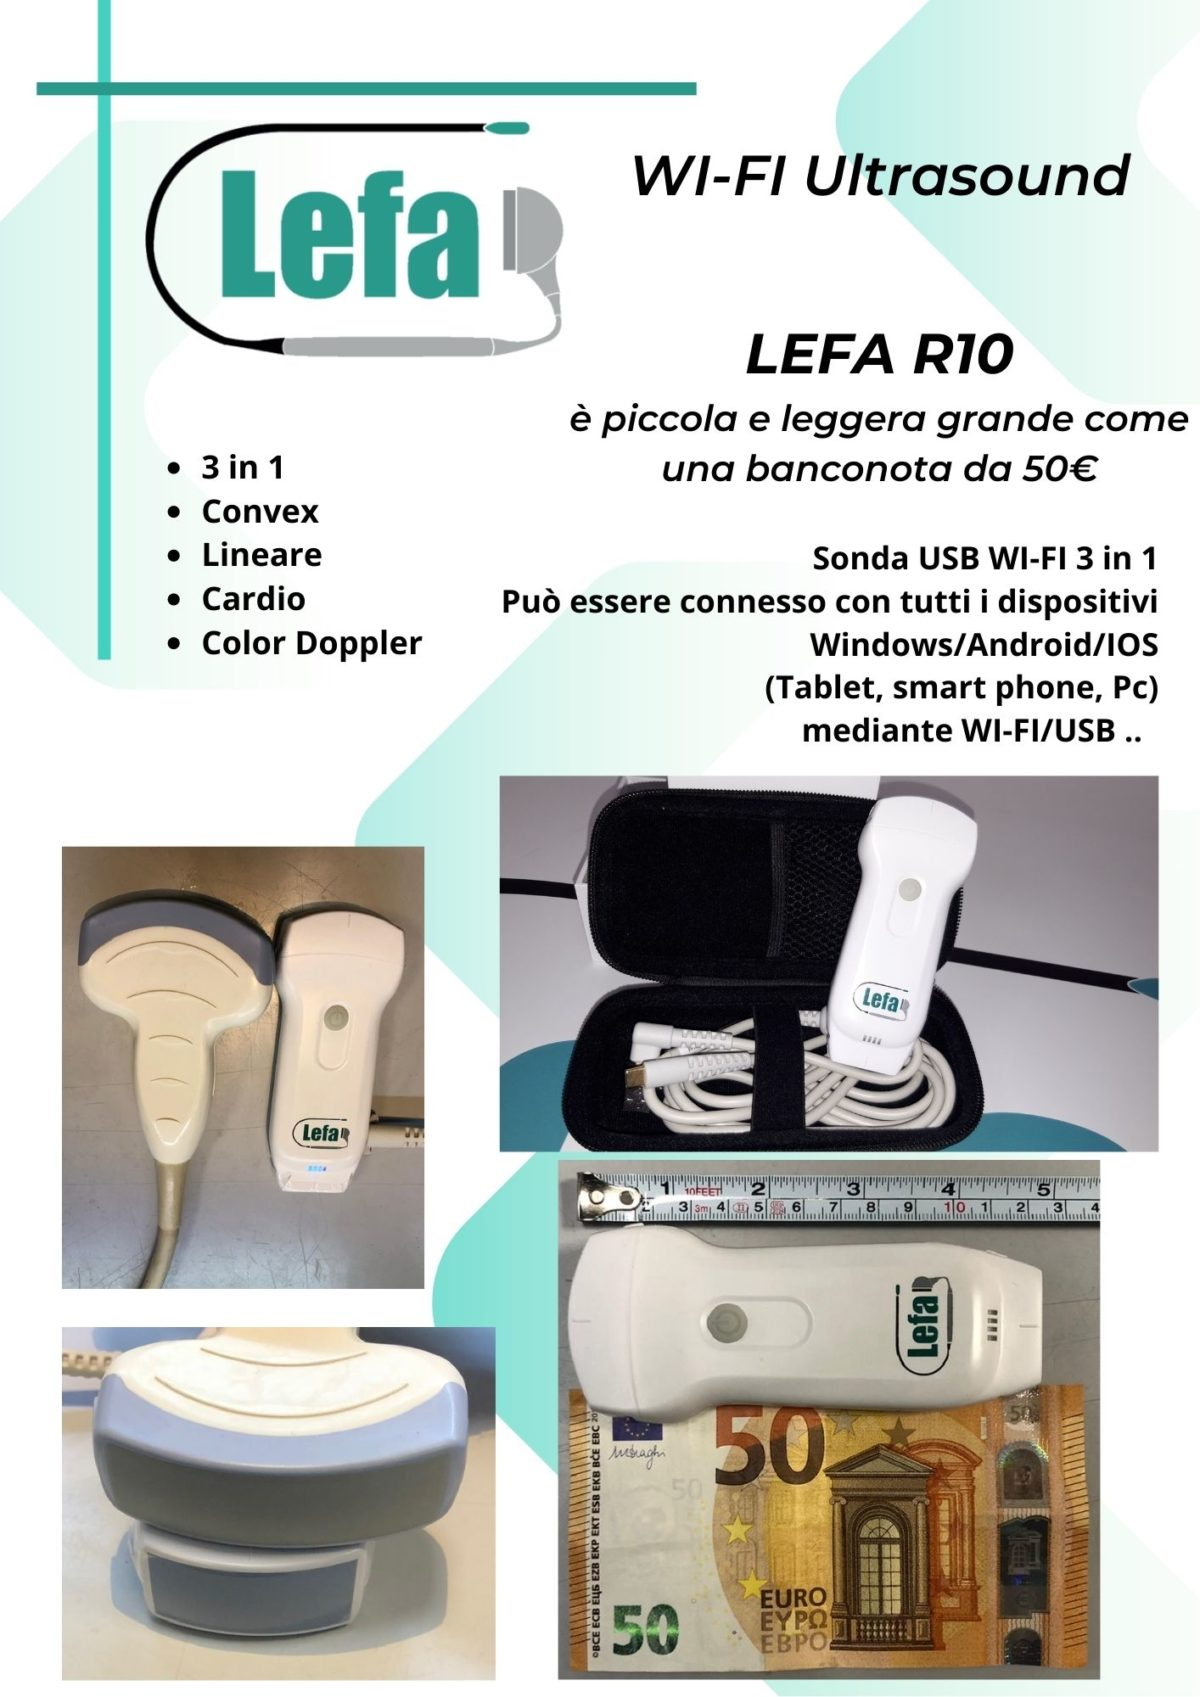 Copia-di-Wifi-probes-brochure-1-1200x1697.jpg